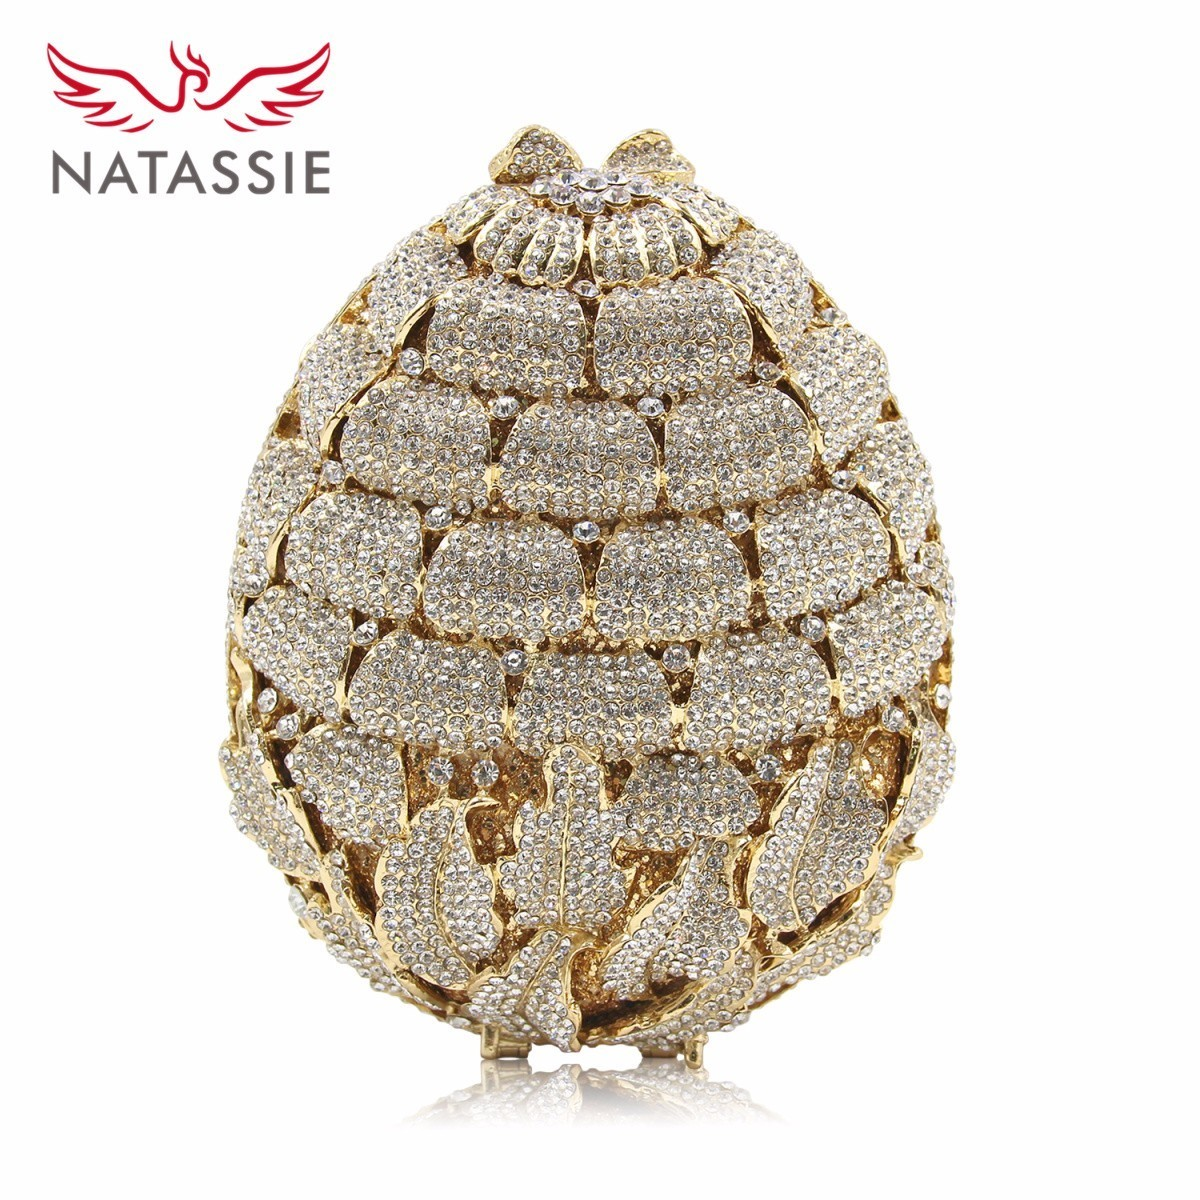 Natassie New Design Ladies Luxury Flower Crystal Evening Bags Women Wedding Clutches Purses Girls Day Clutch Party Bag 2017 new women day clutches bag luxury diamonds bride wedding party dinner bag handbag ladies evening bags handbags purses bolsa